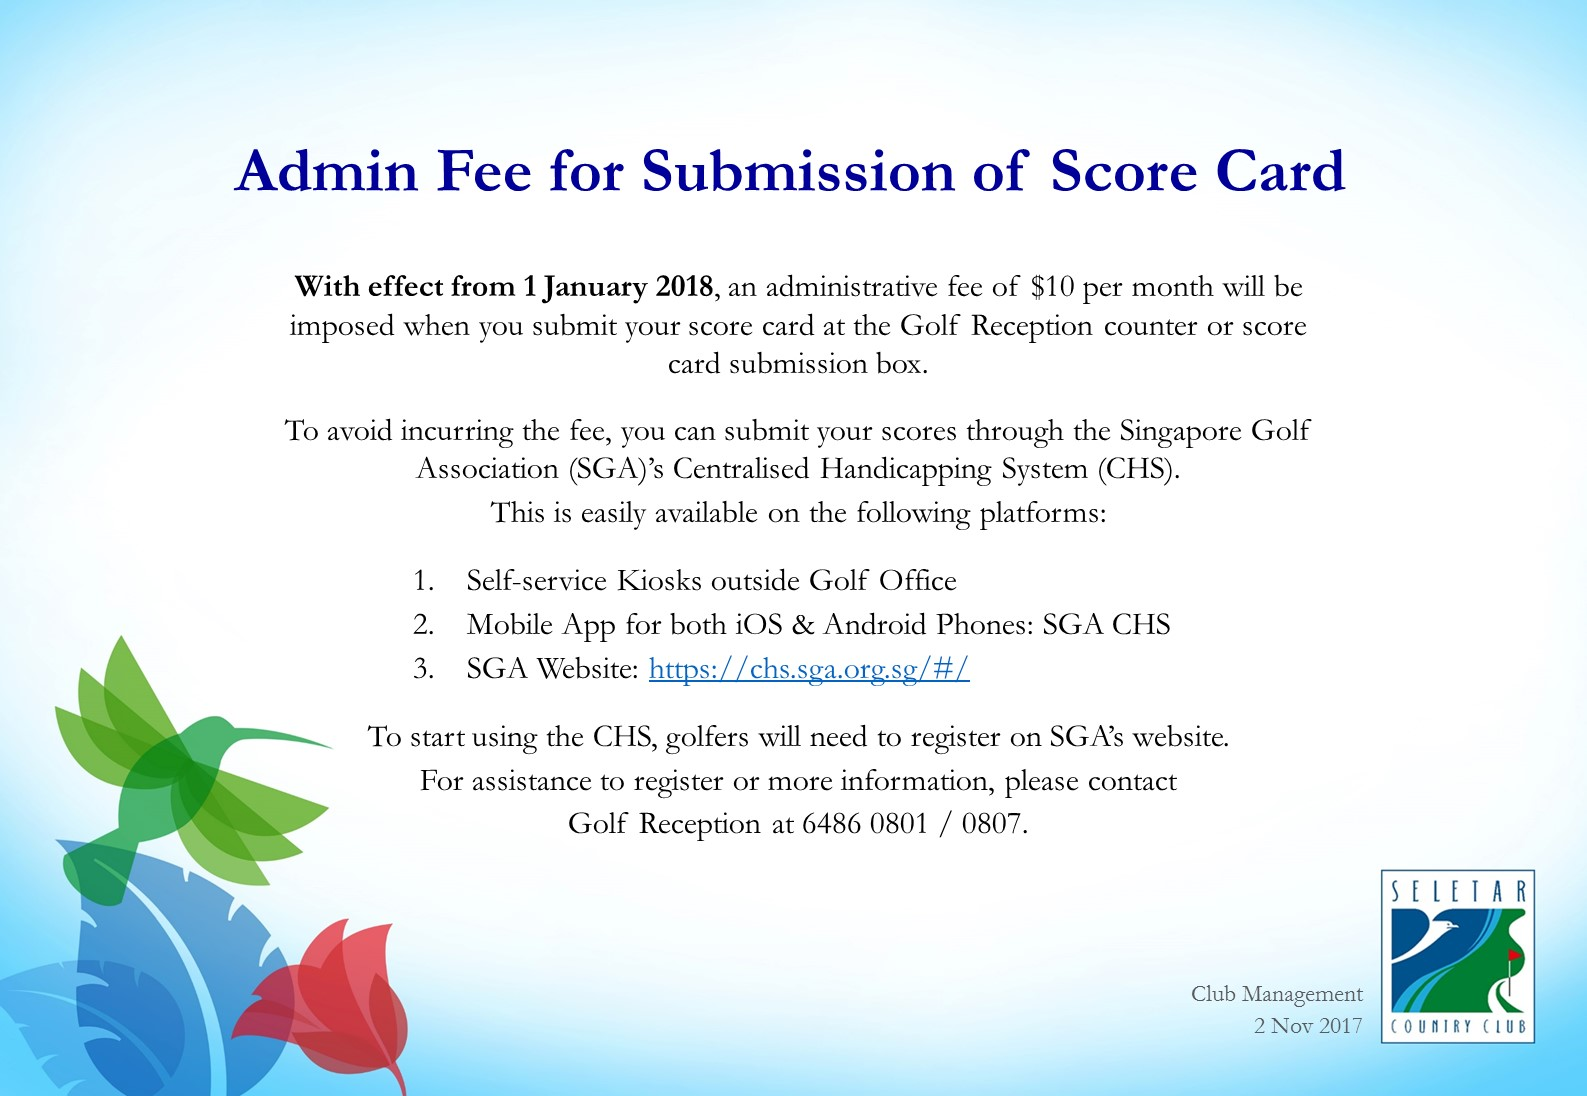 Admin Fee for Submission of Score Card_Final1